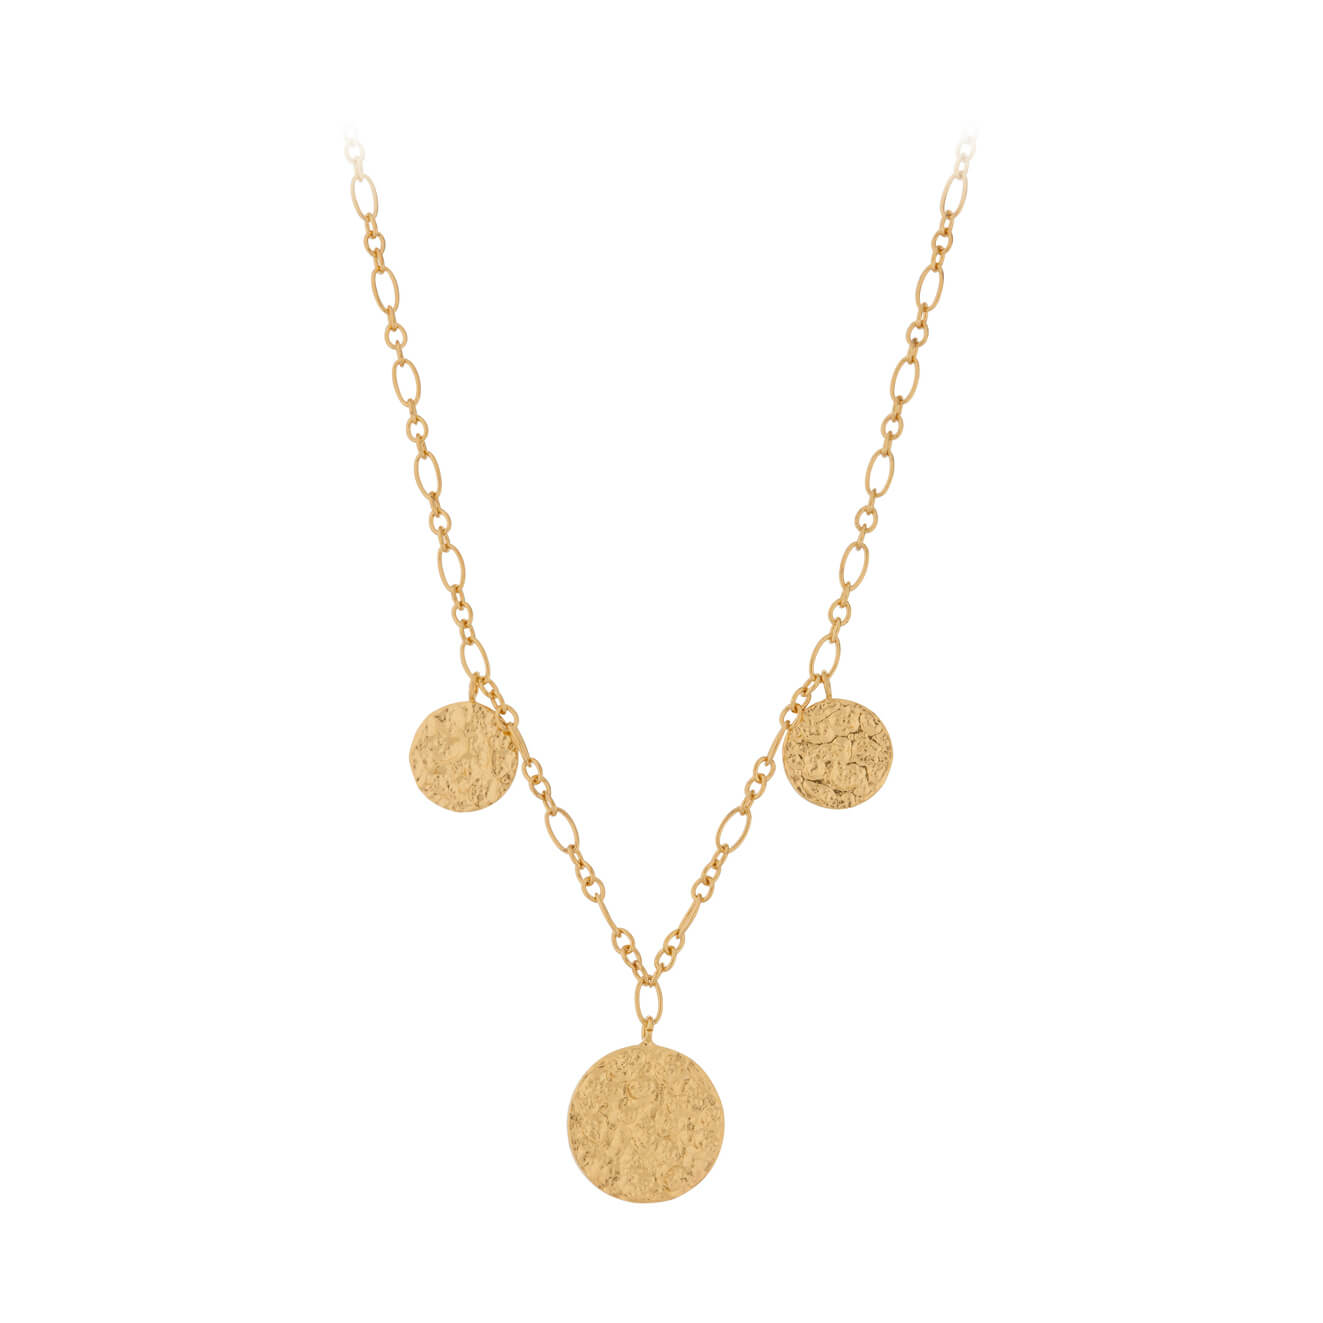 Pernille Corydon Jewellery - New Moon Necklace - INGAR